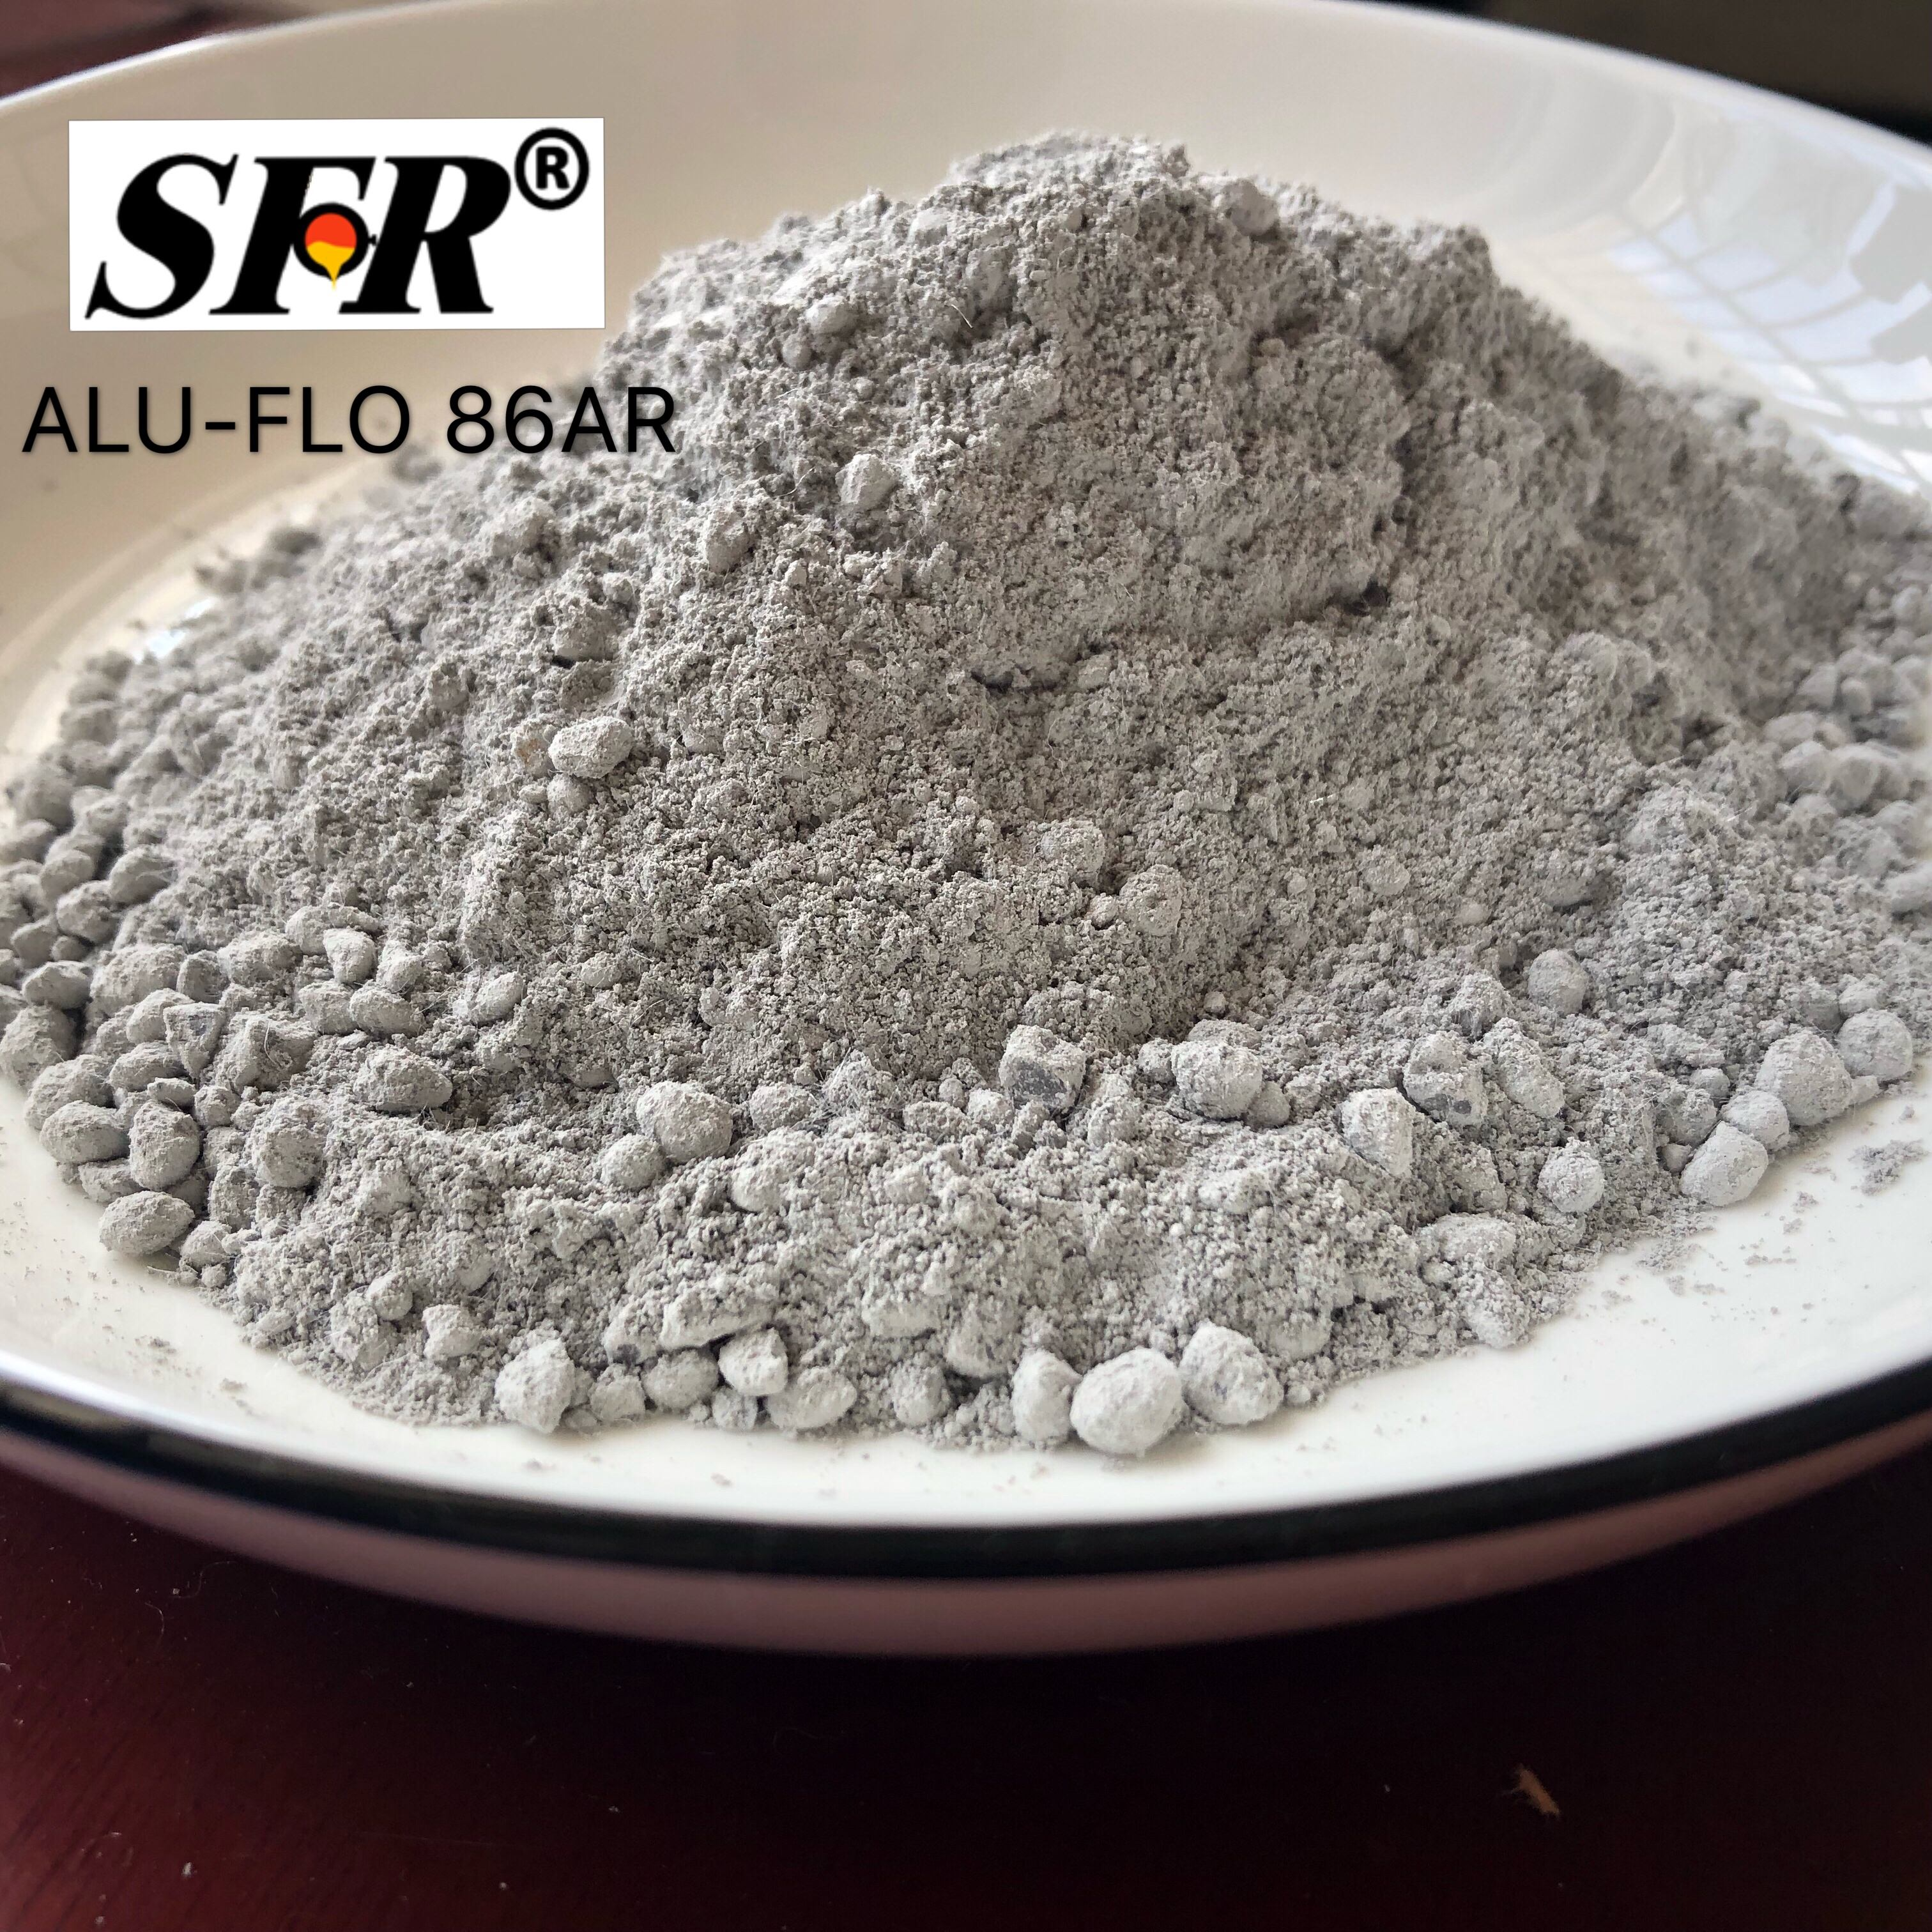 ALU-FLO 86ARl China Supplier Refractory High Aluminium Lining material for aluminium melting and holding furnaces